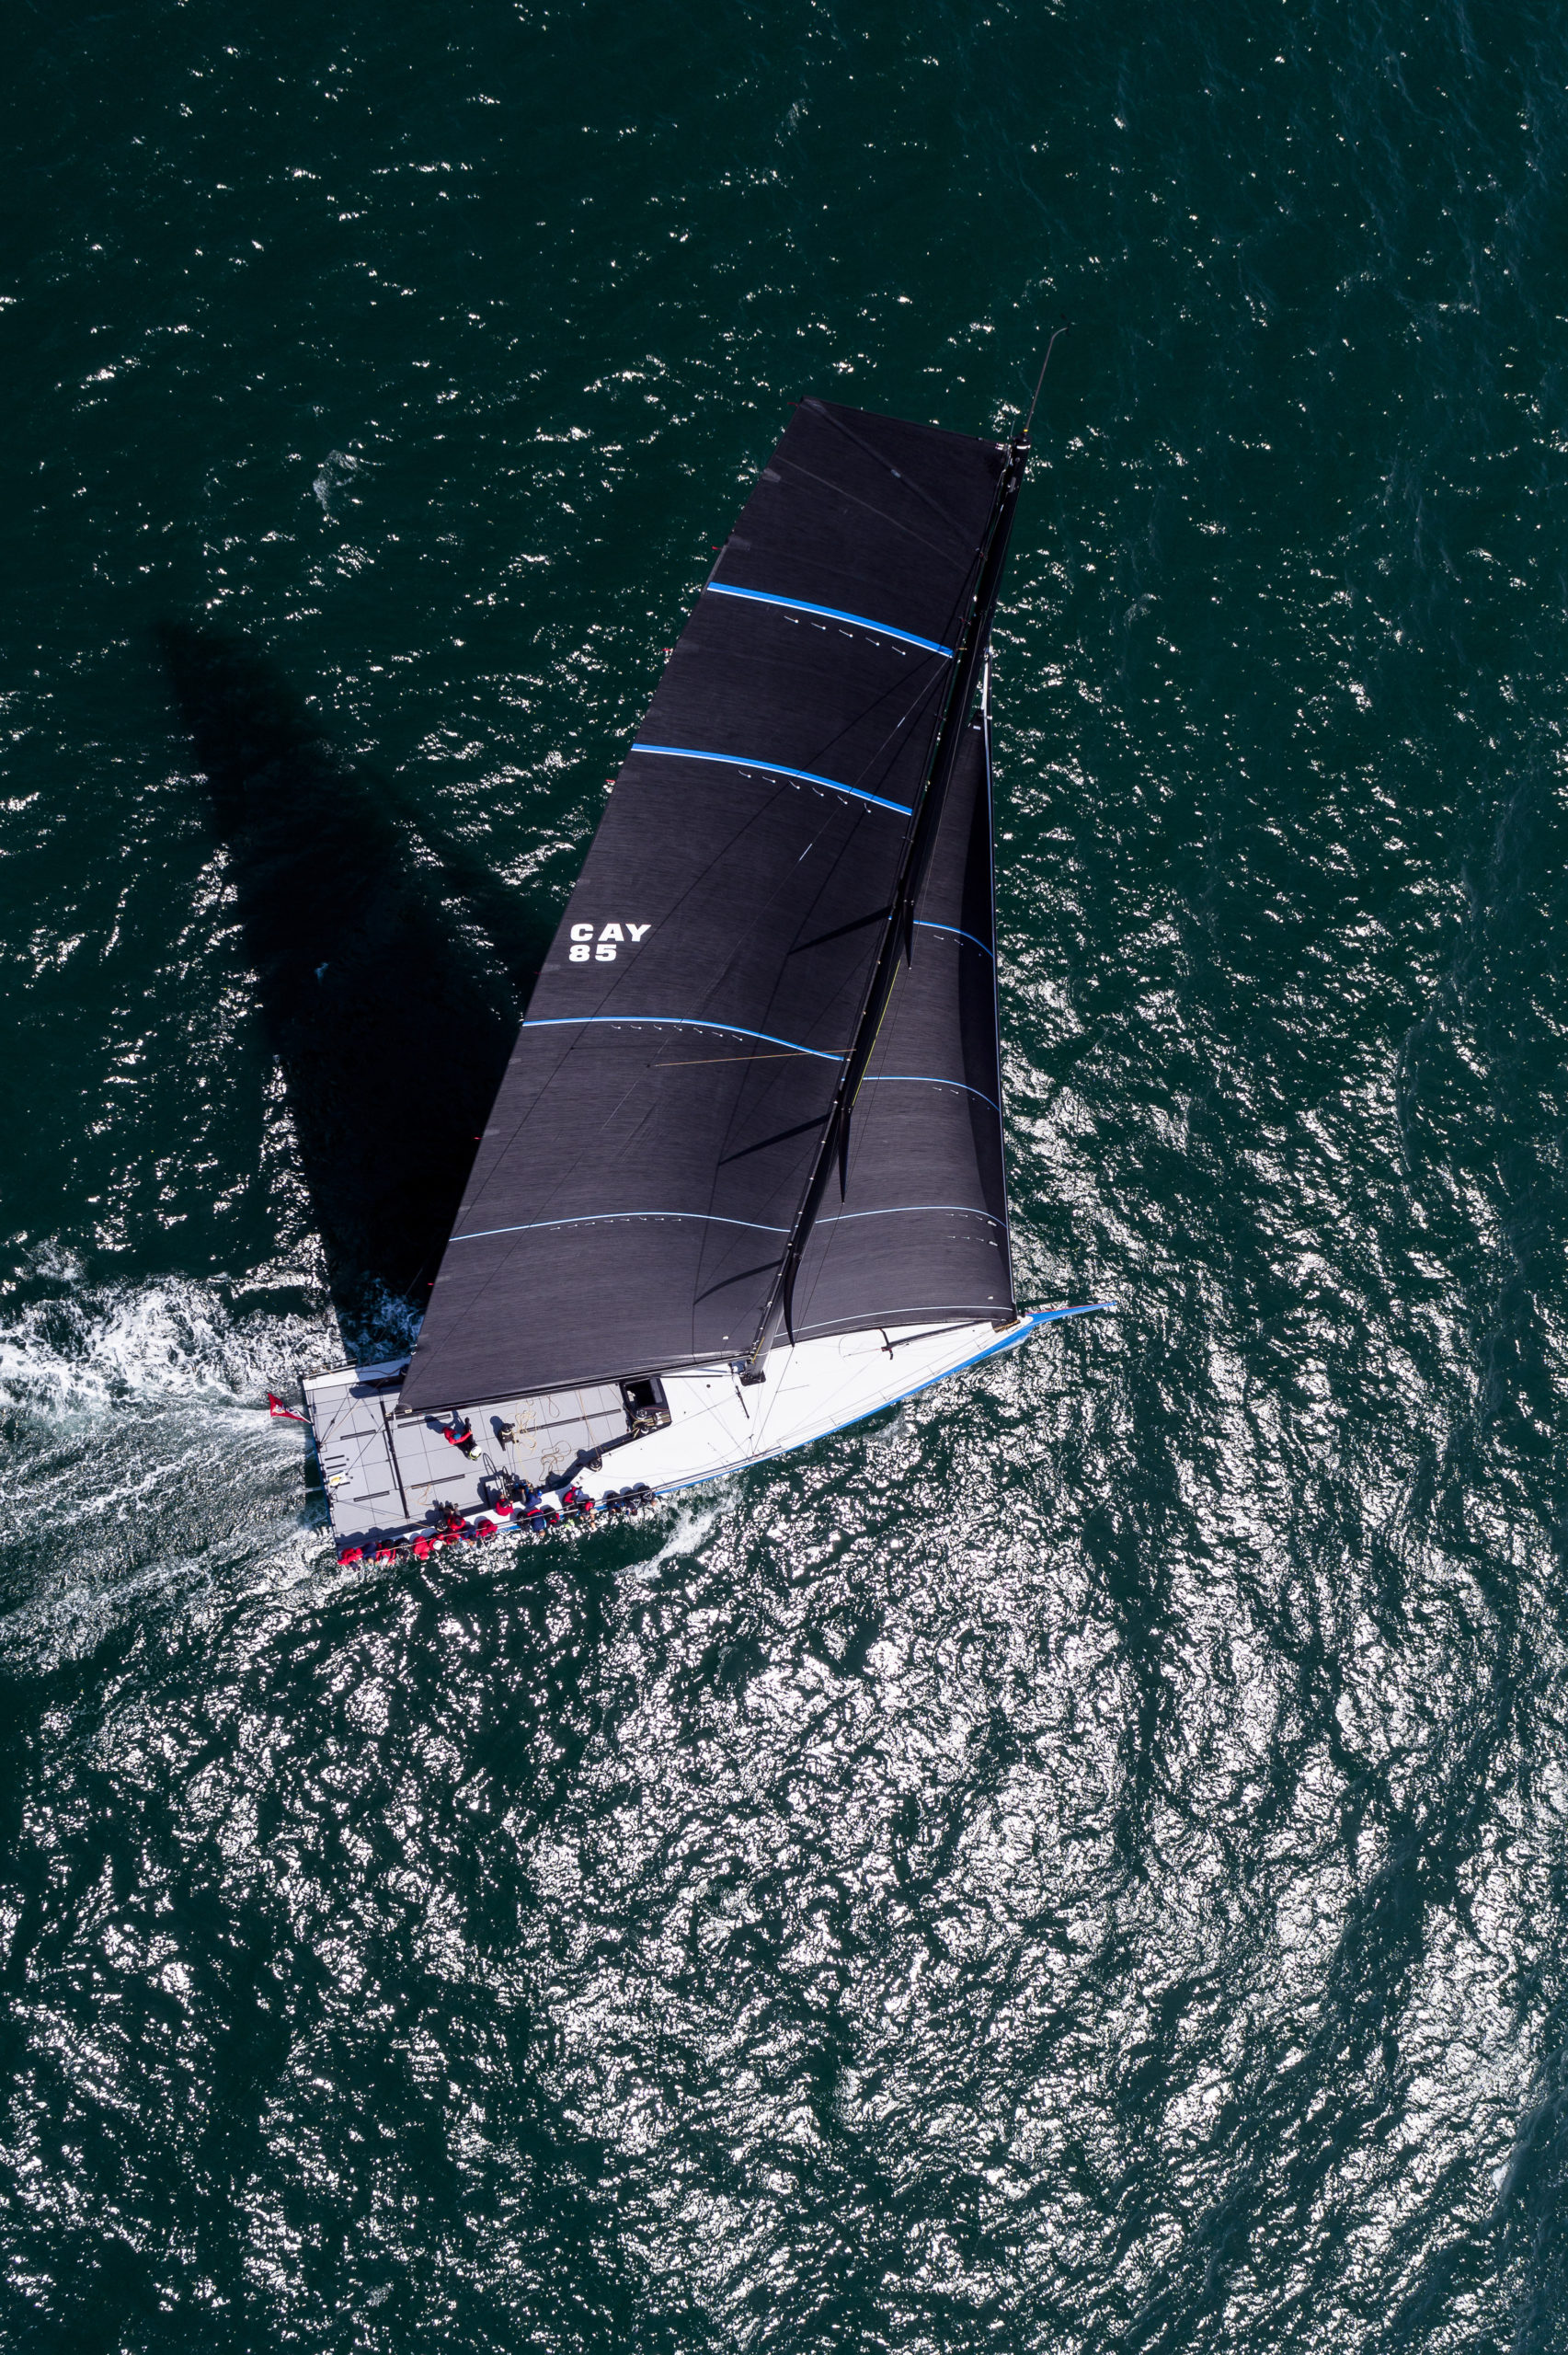 sailing stratis yachting technology doyle sails a most robust pedigree